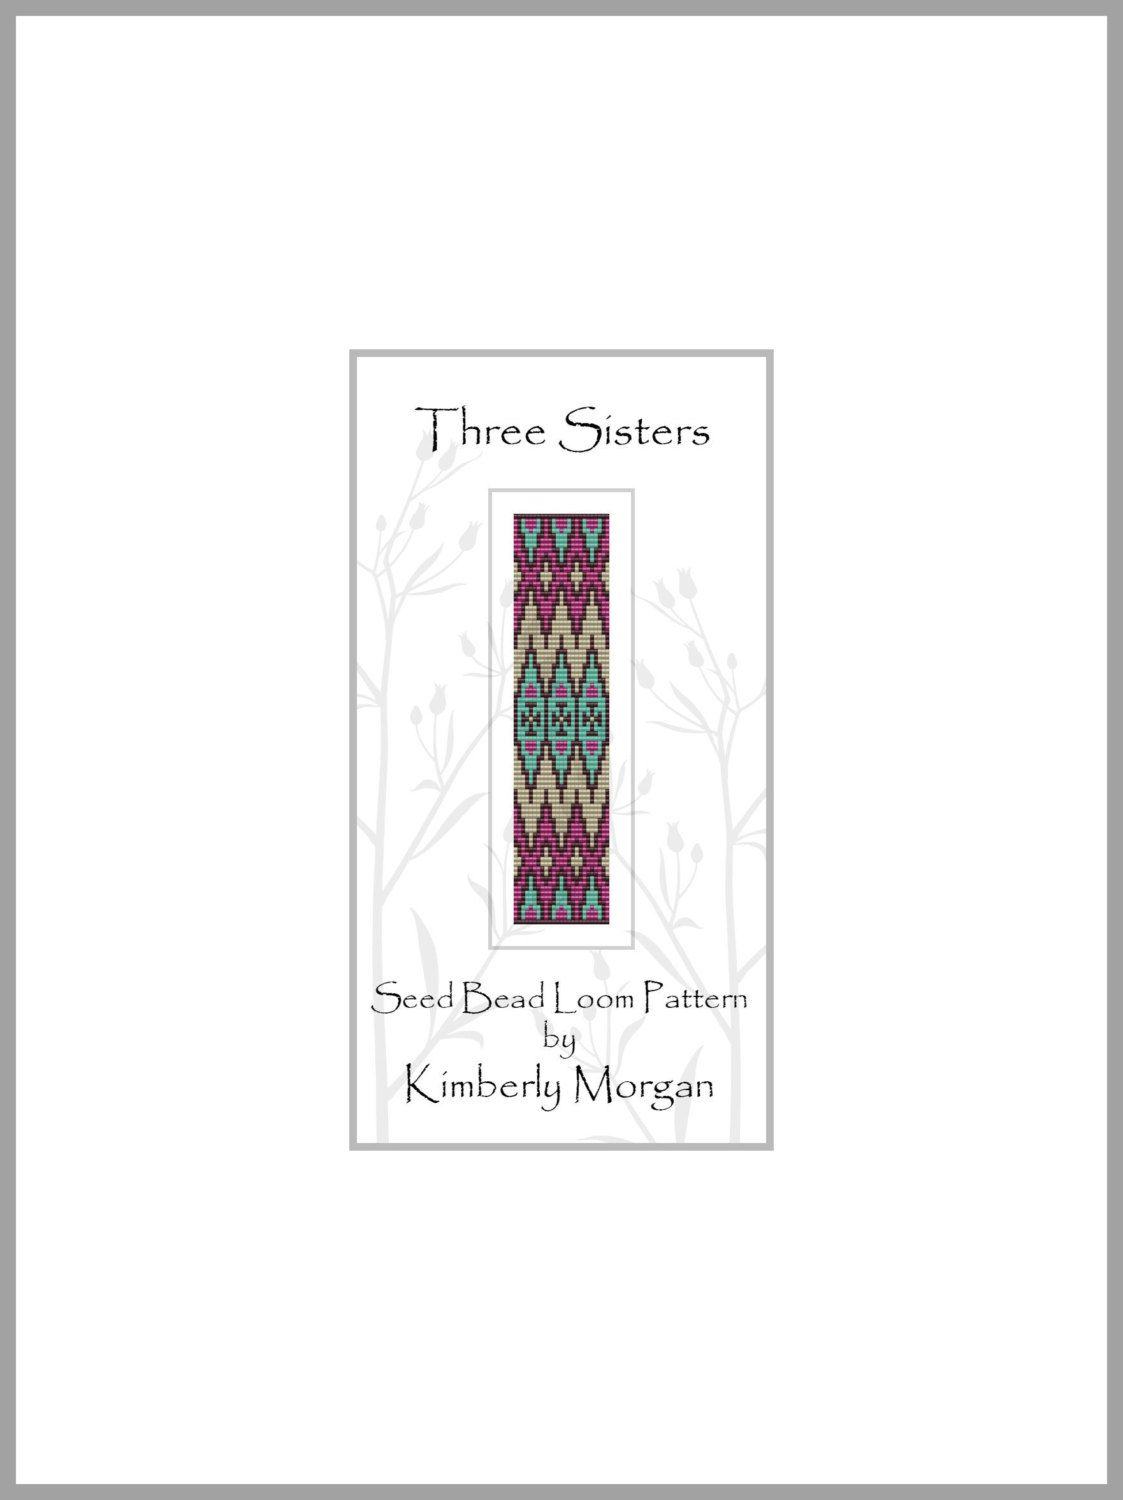 The Three Sisters PDF contains Labeled Color Graph and Row